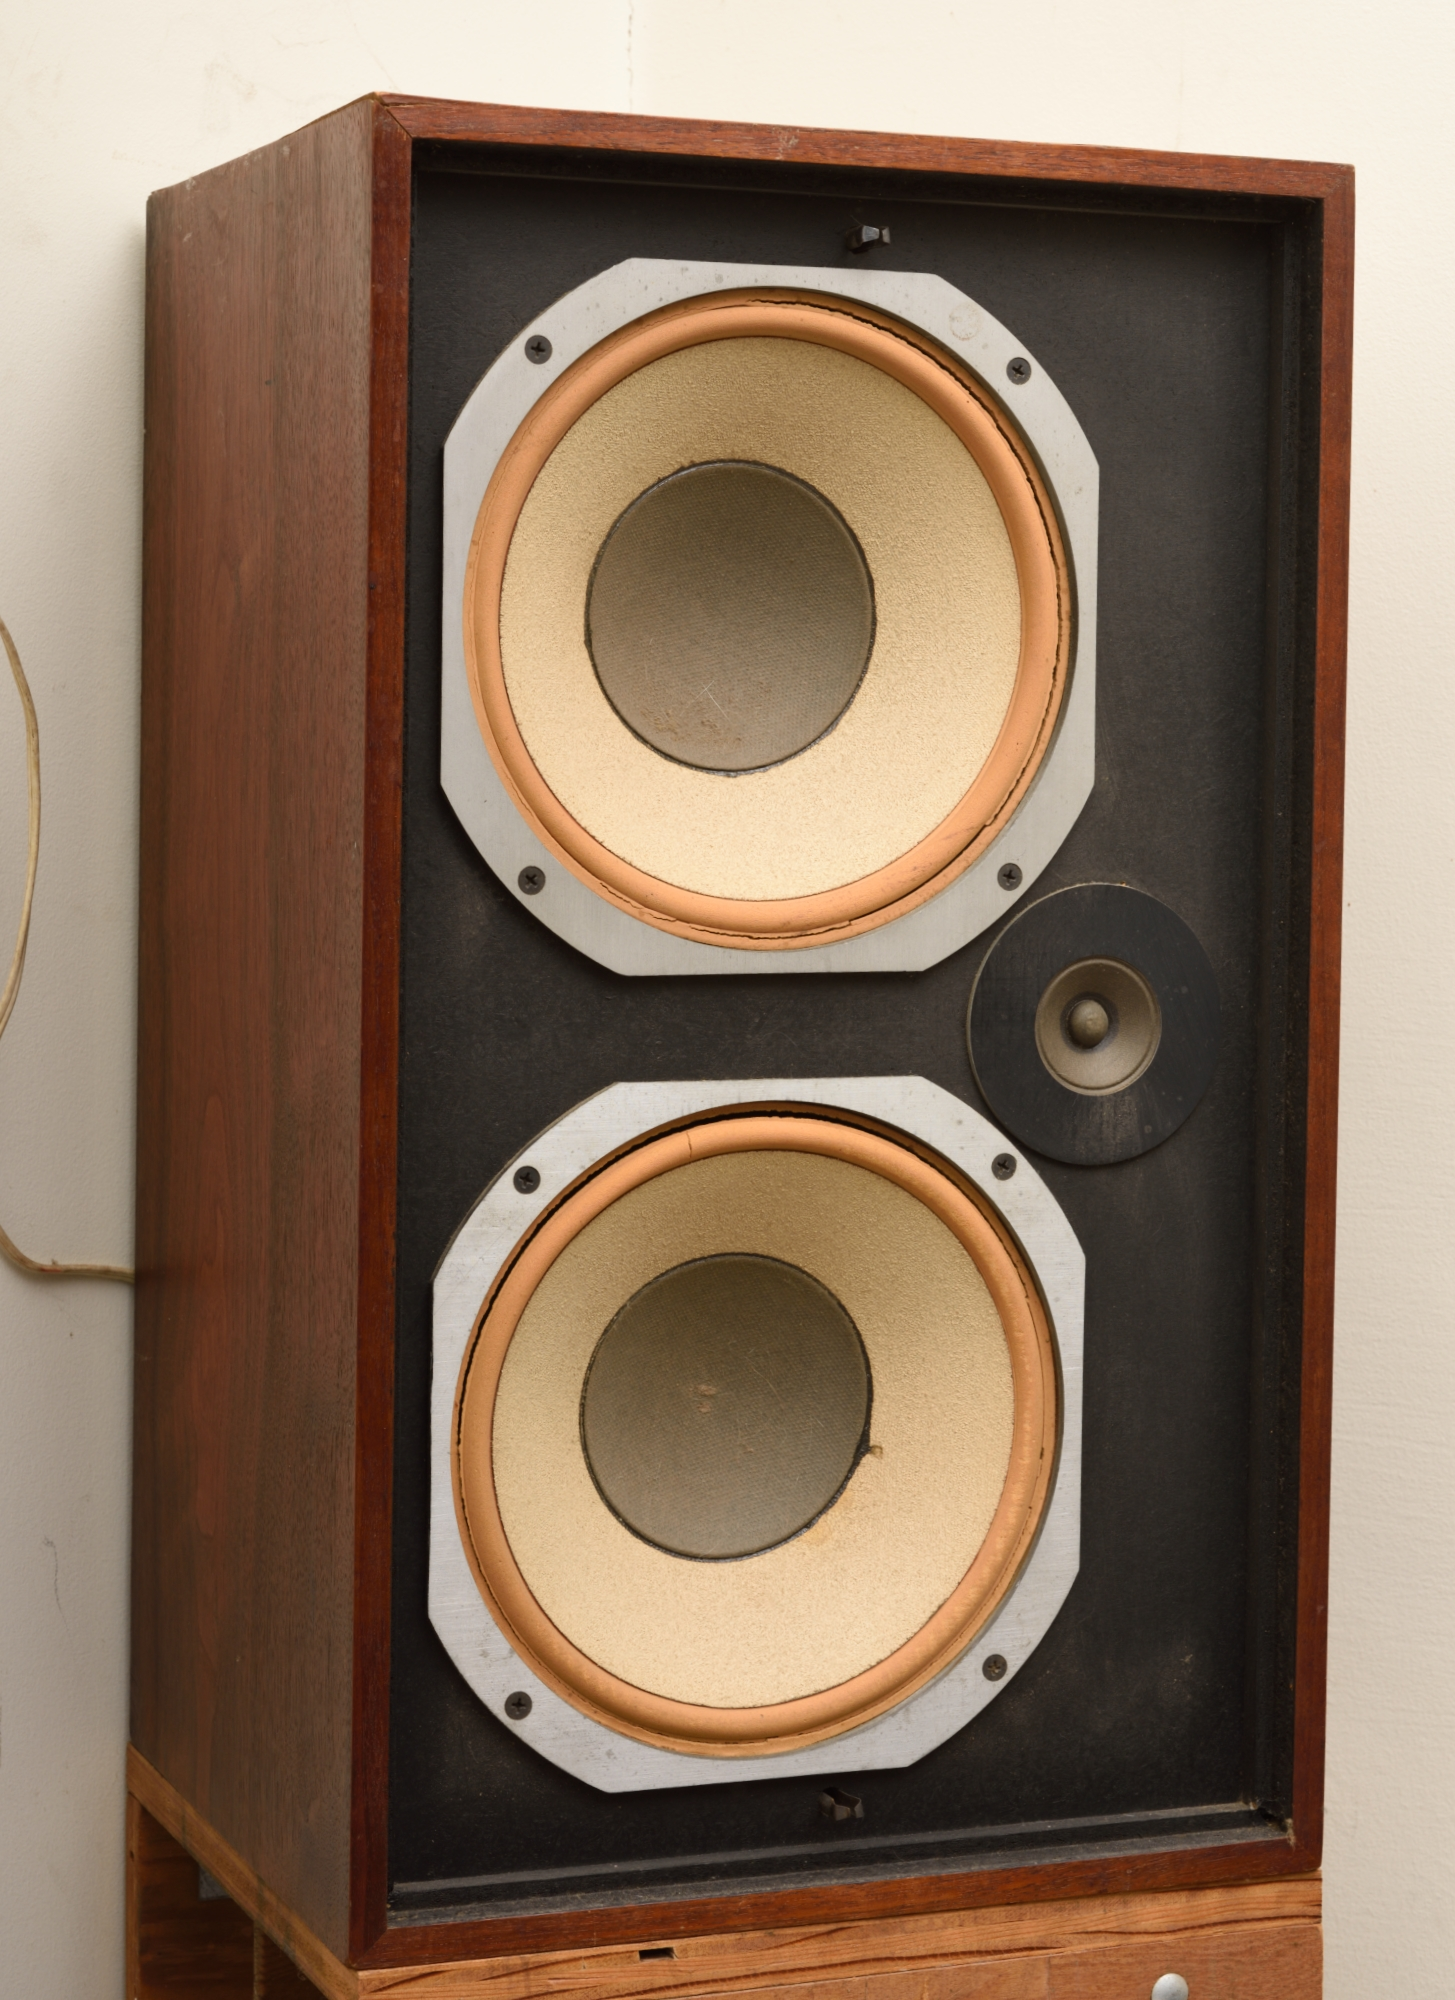 You are wel e to visit and listen to the speakers $200 ALTEC LANSING